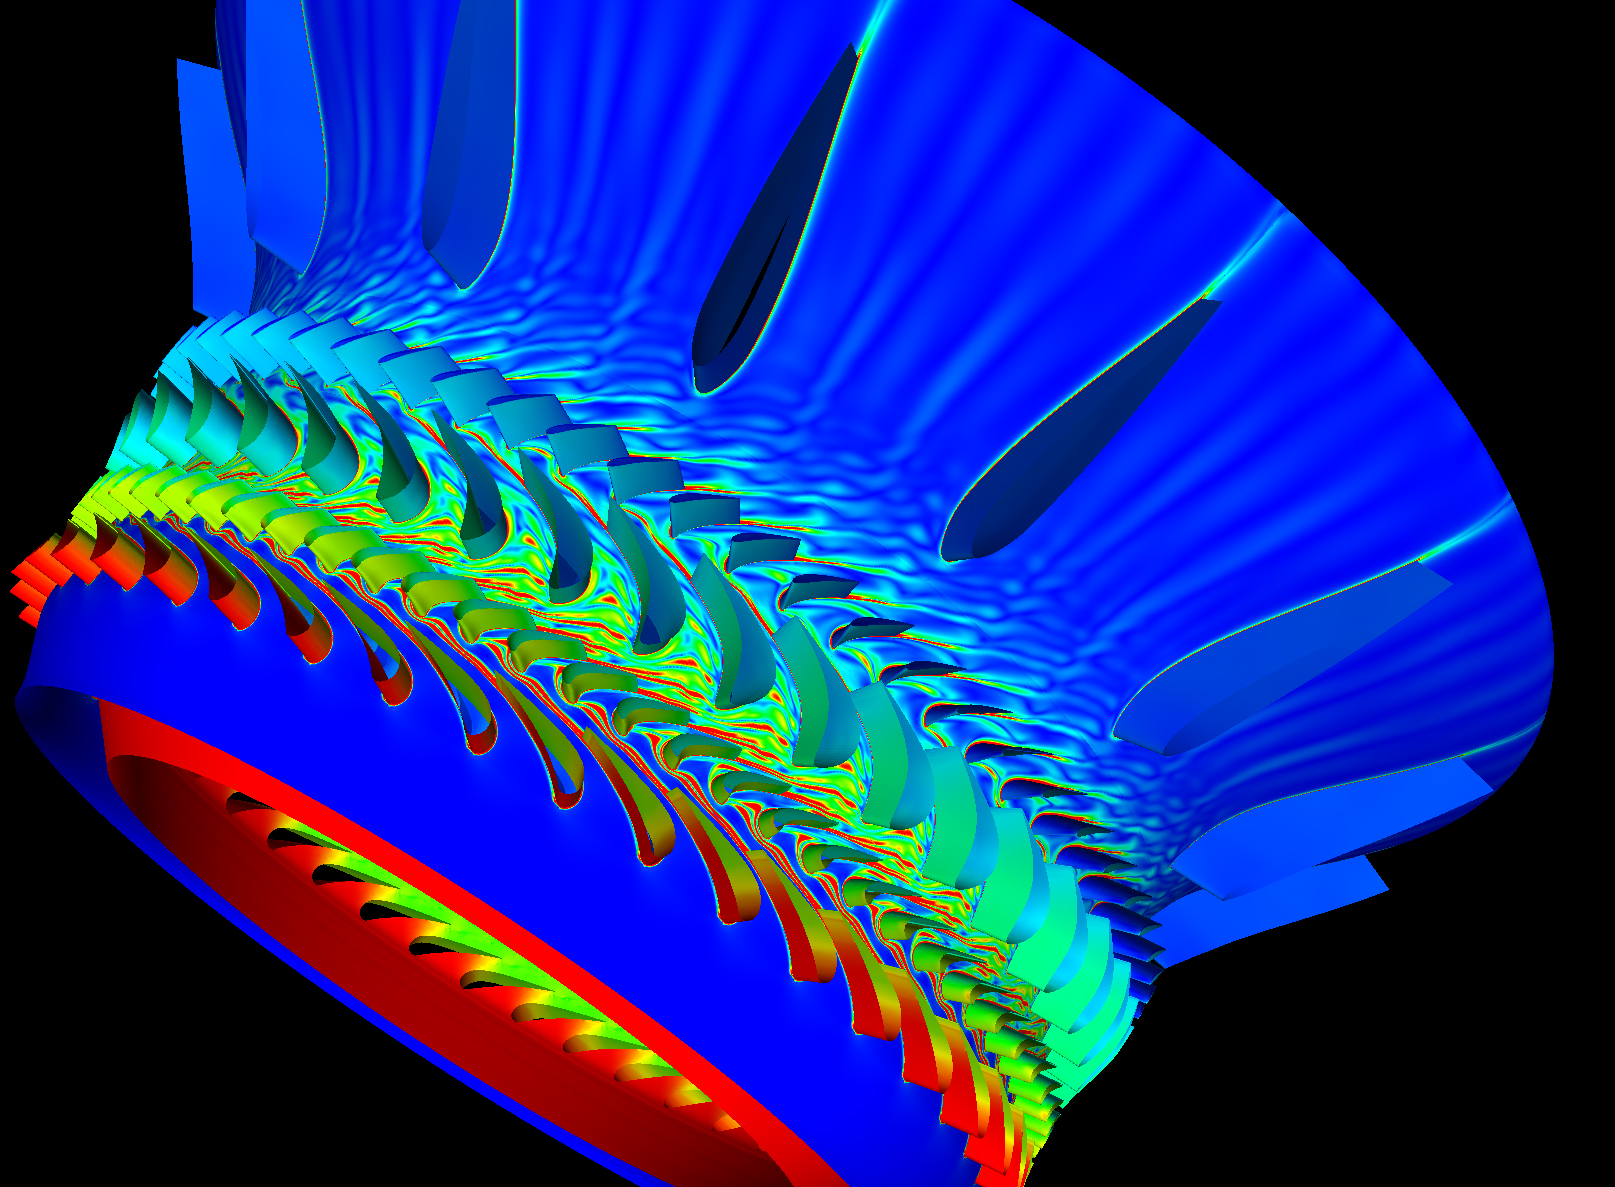 File Jet Engine Blades Simulation Jpg Wikimedia Commons